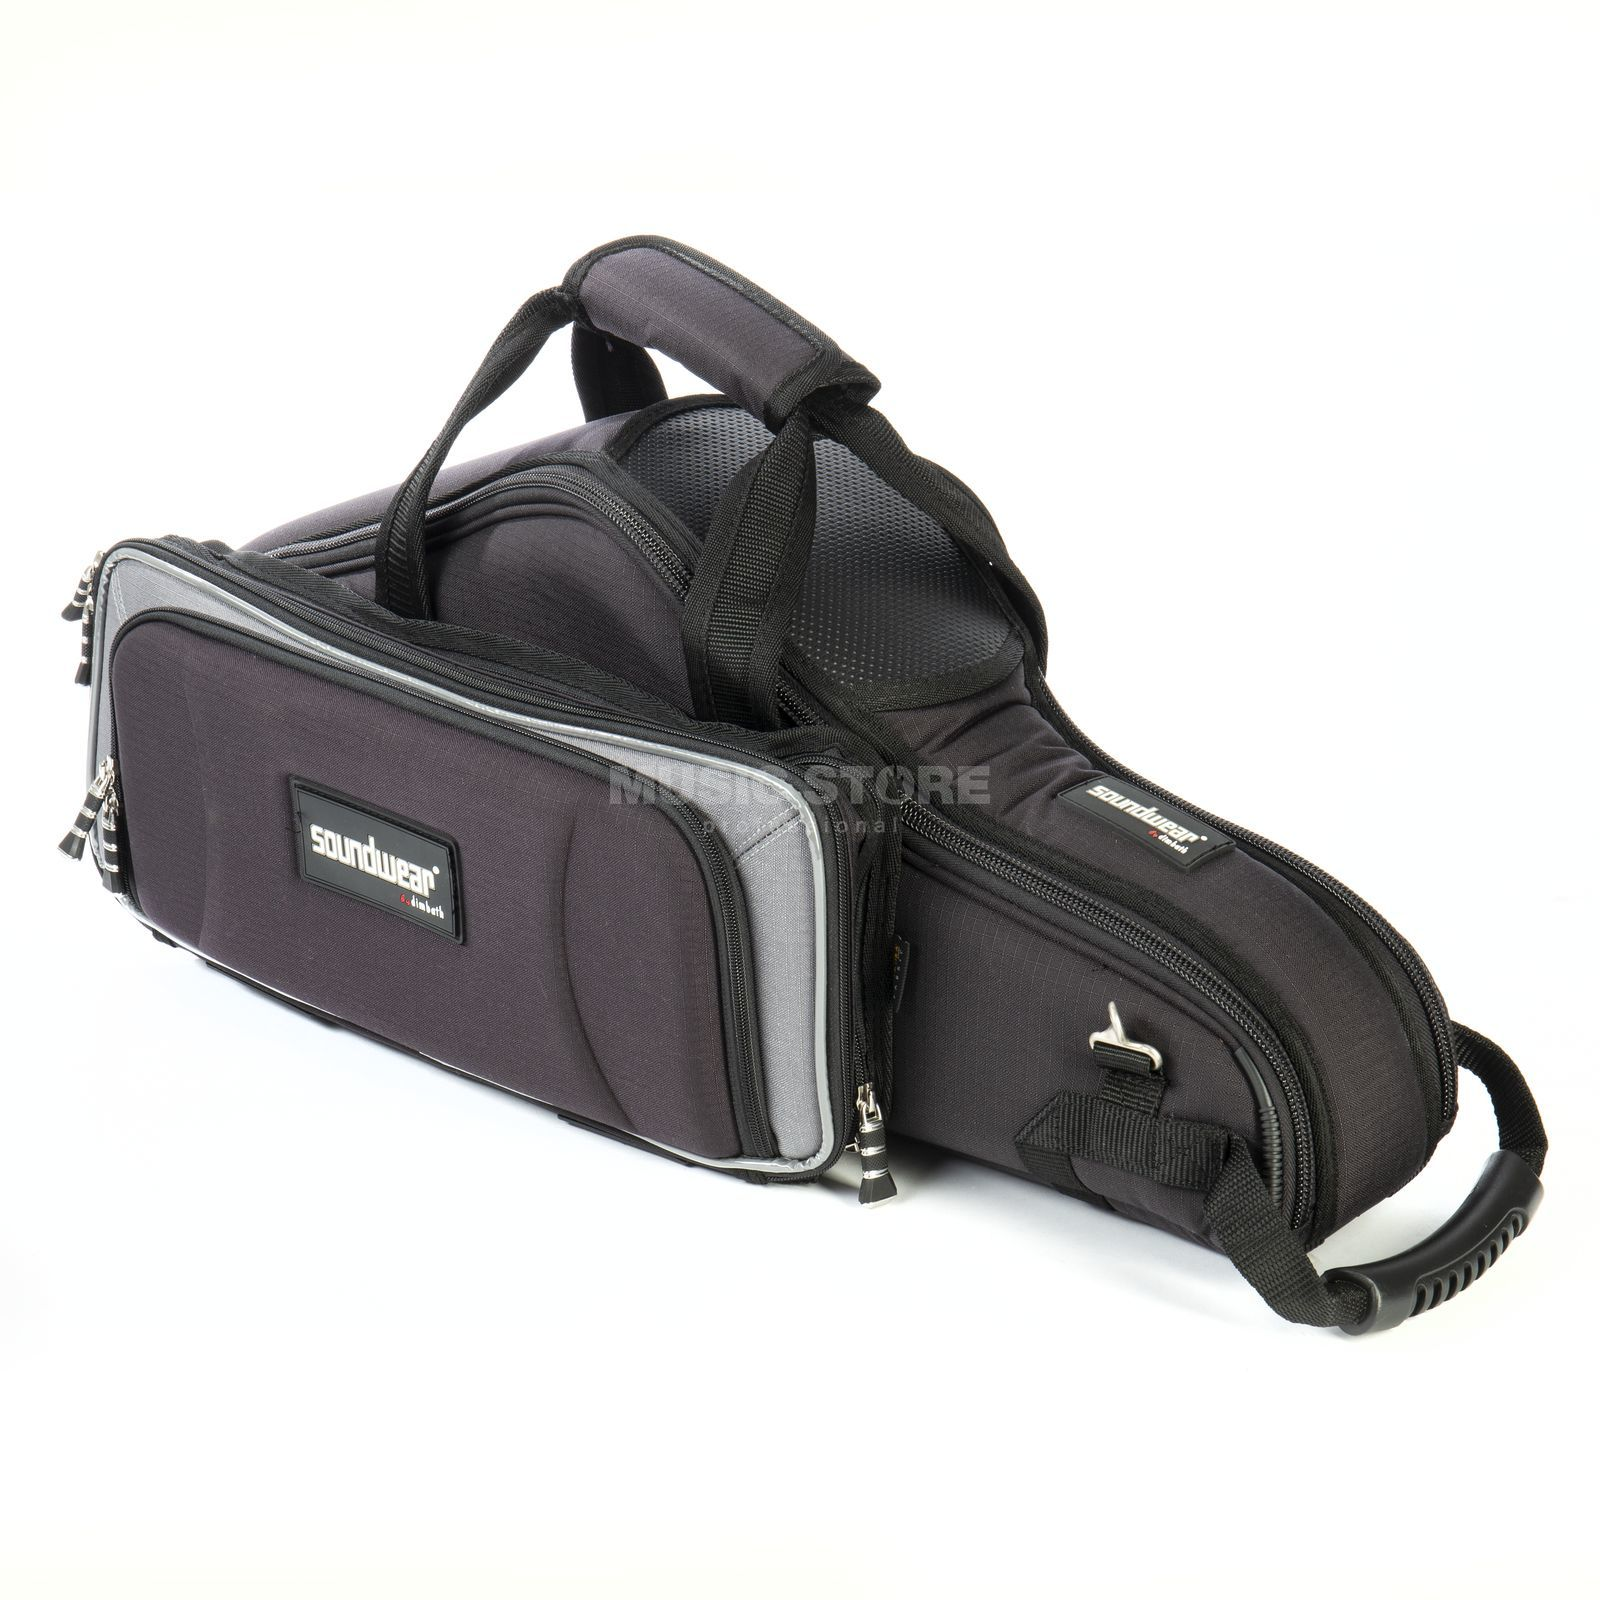 Soundwear Performer Altsax Bag  Product Image